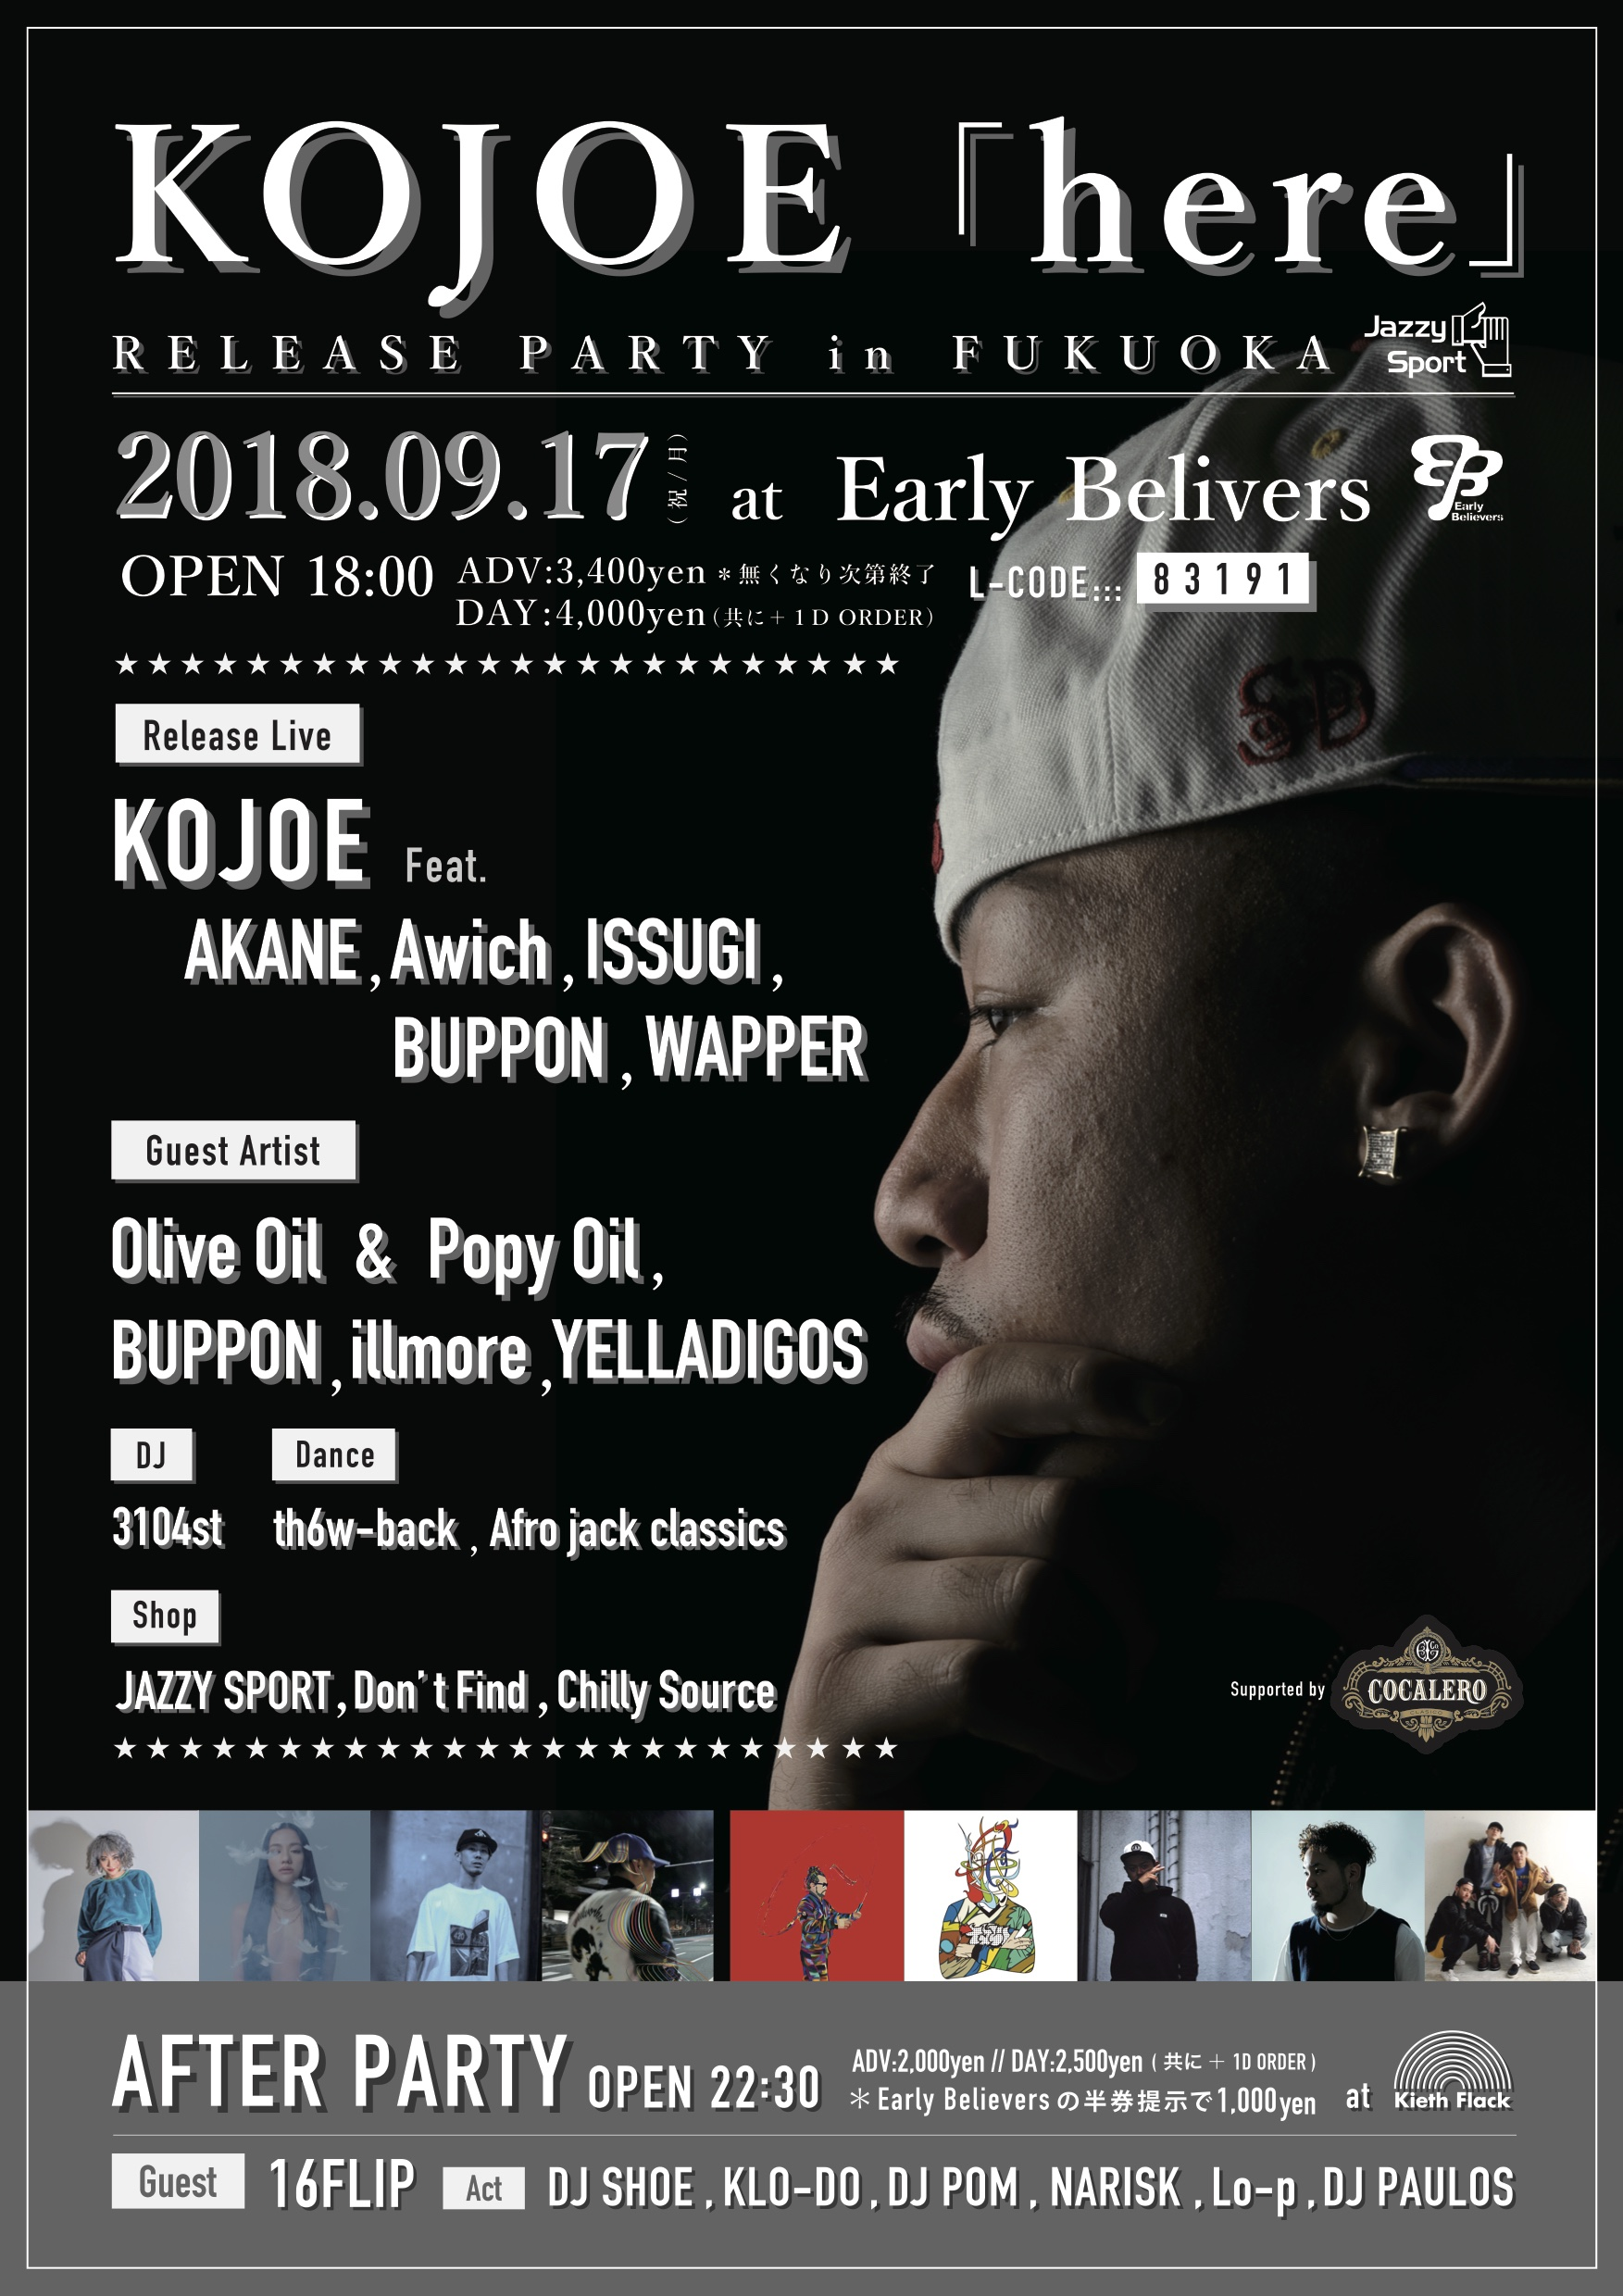 KOJOE「here」RELEASE PARTY in FUKUOKA